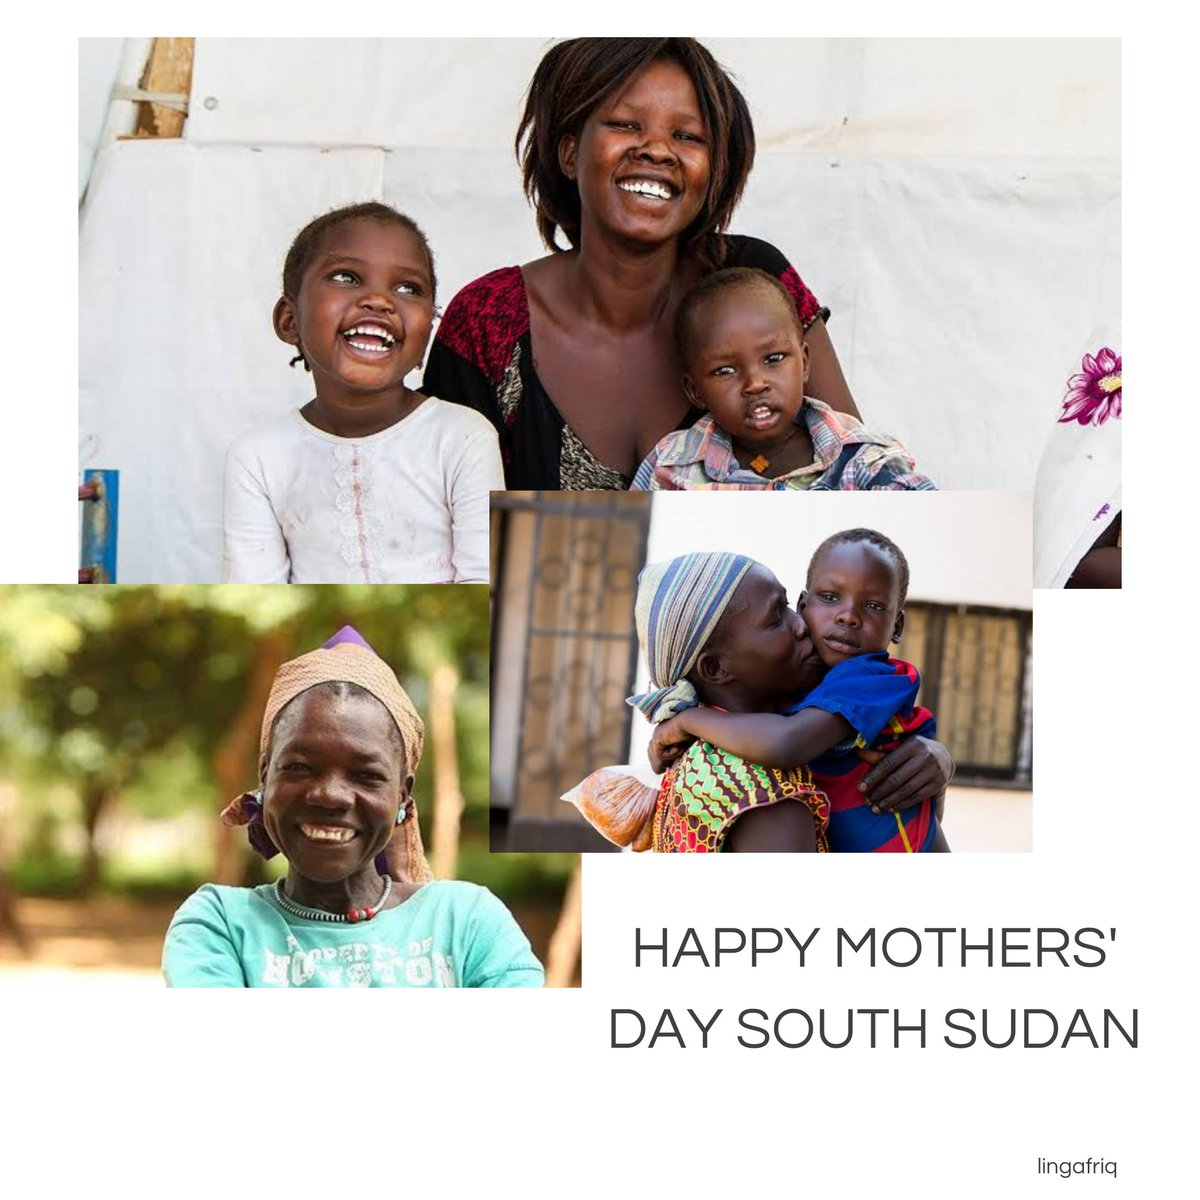 Celebrating Mothers, for laughing with us on the best days and sticking with us on the worst days. Happy Mothers' Day South Sudan! • • • #happymothersday #happymothersday#southsudan #southsudanese #lingafriq #africanow #africa #afriq #southsudanmothersdaypic.twitter.com/pmQ7CaAl6y